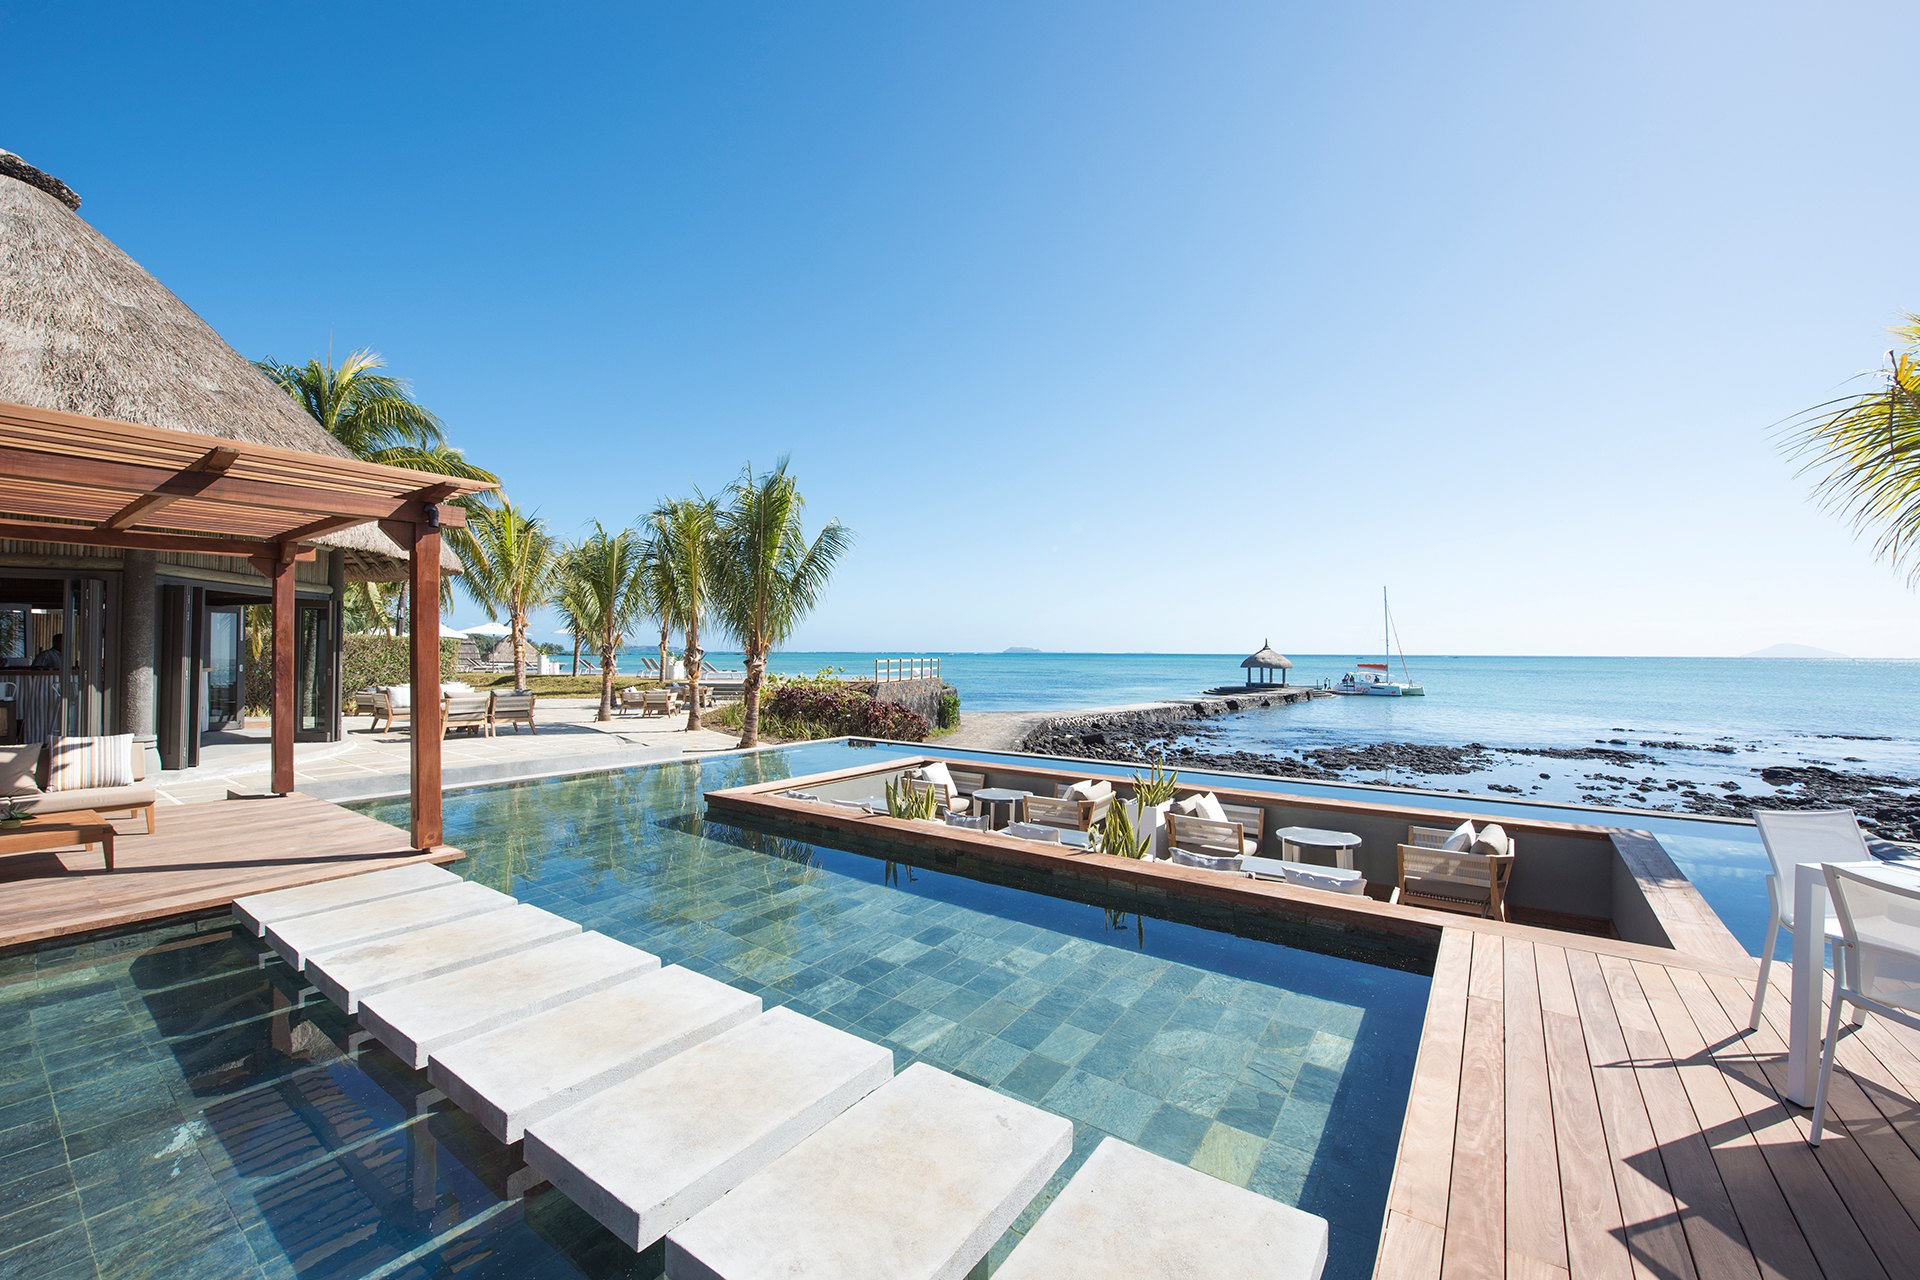 Veranda Paul et Virginie Mauritius Holiday (Adults Only)